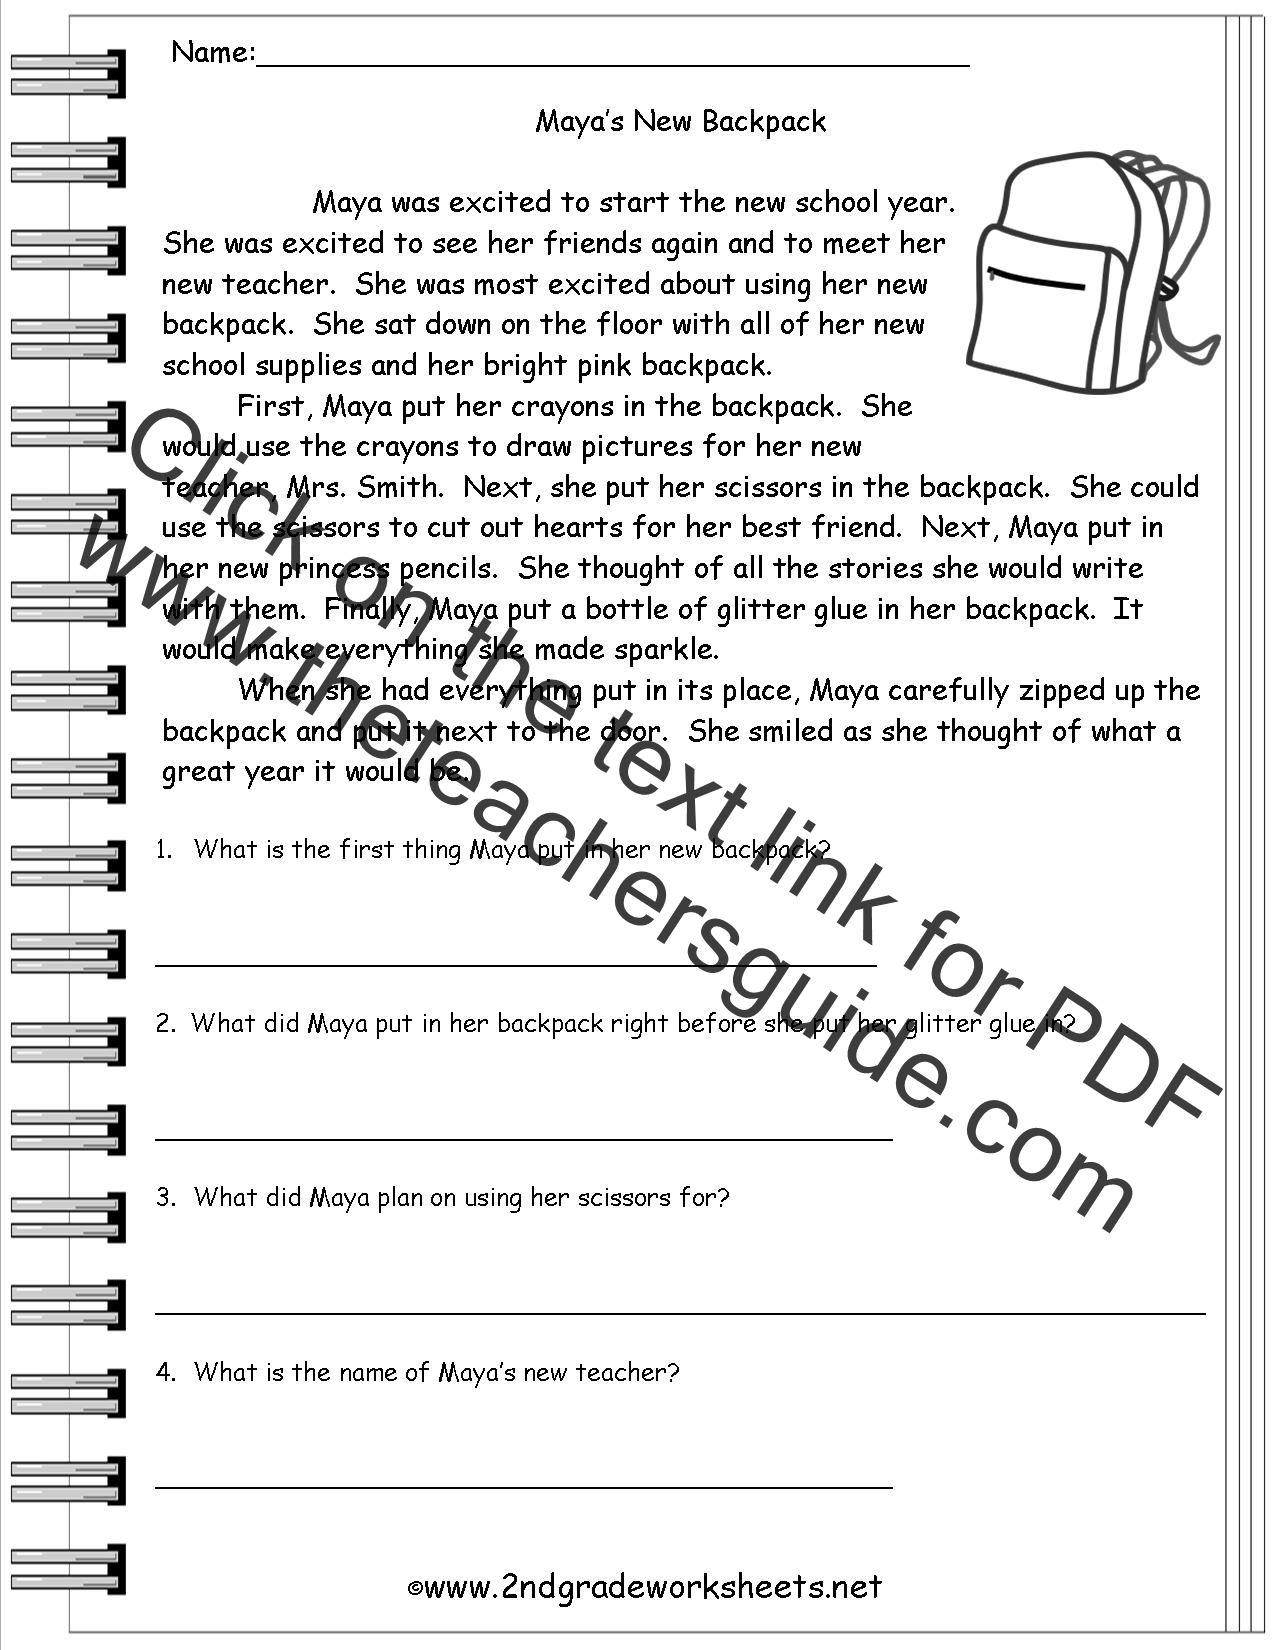 Worksheet Reading Comprehension Grade 2 Worksheets reading worksheeets literature worksheets